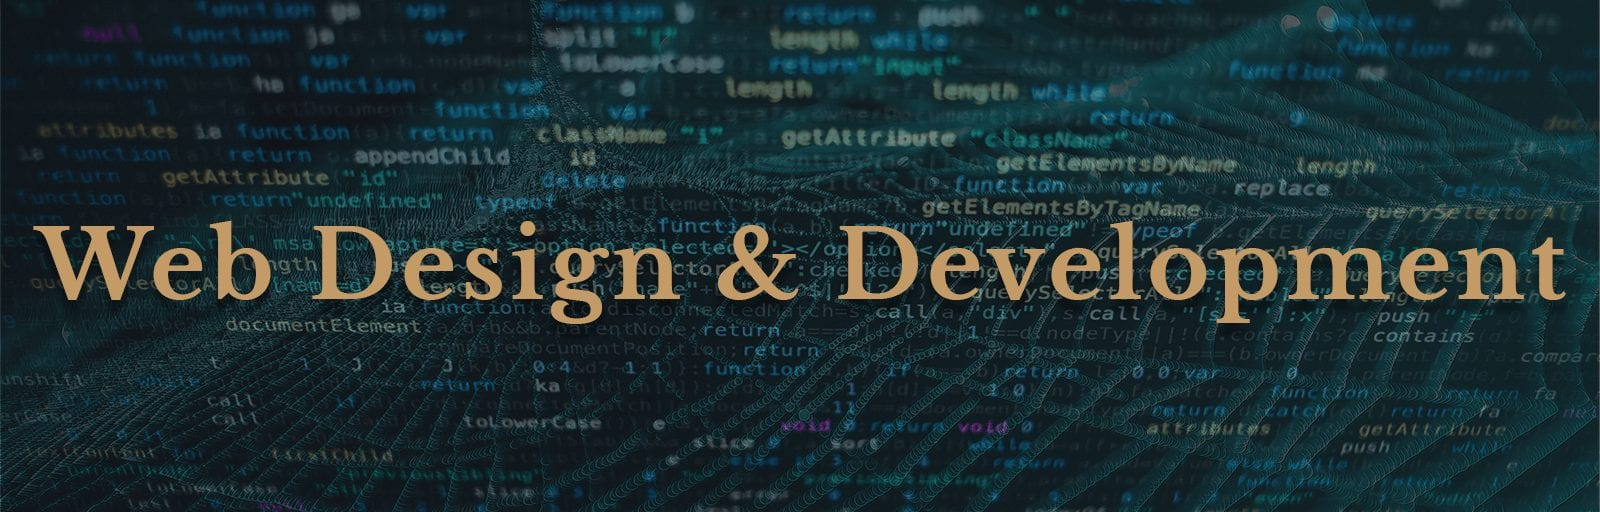 Web Designs and development